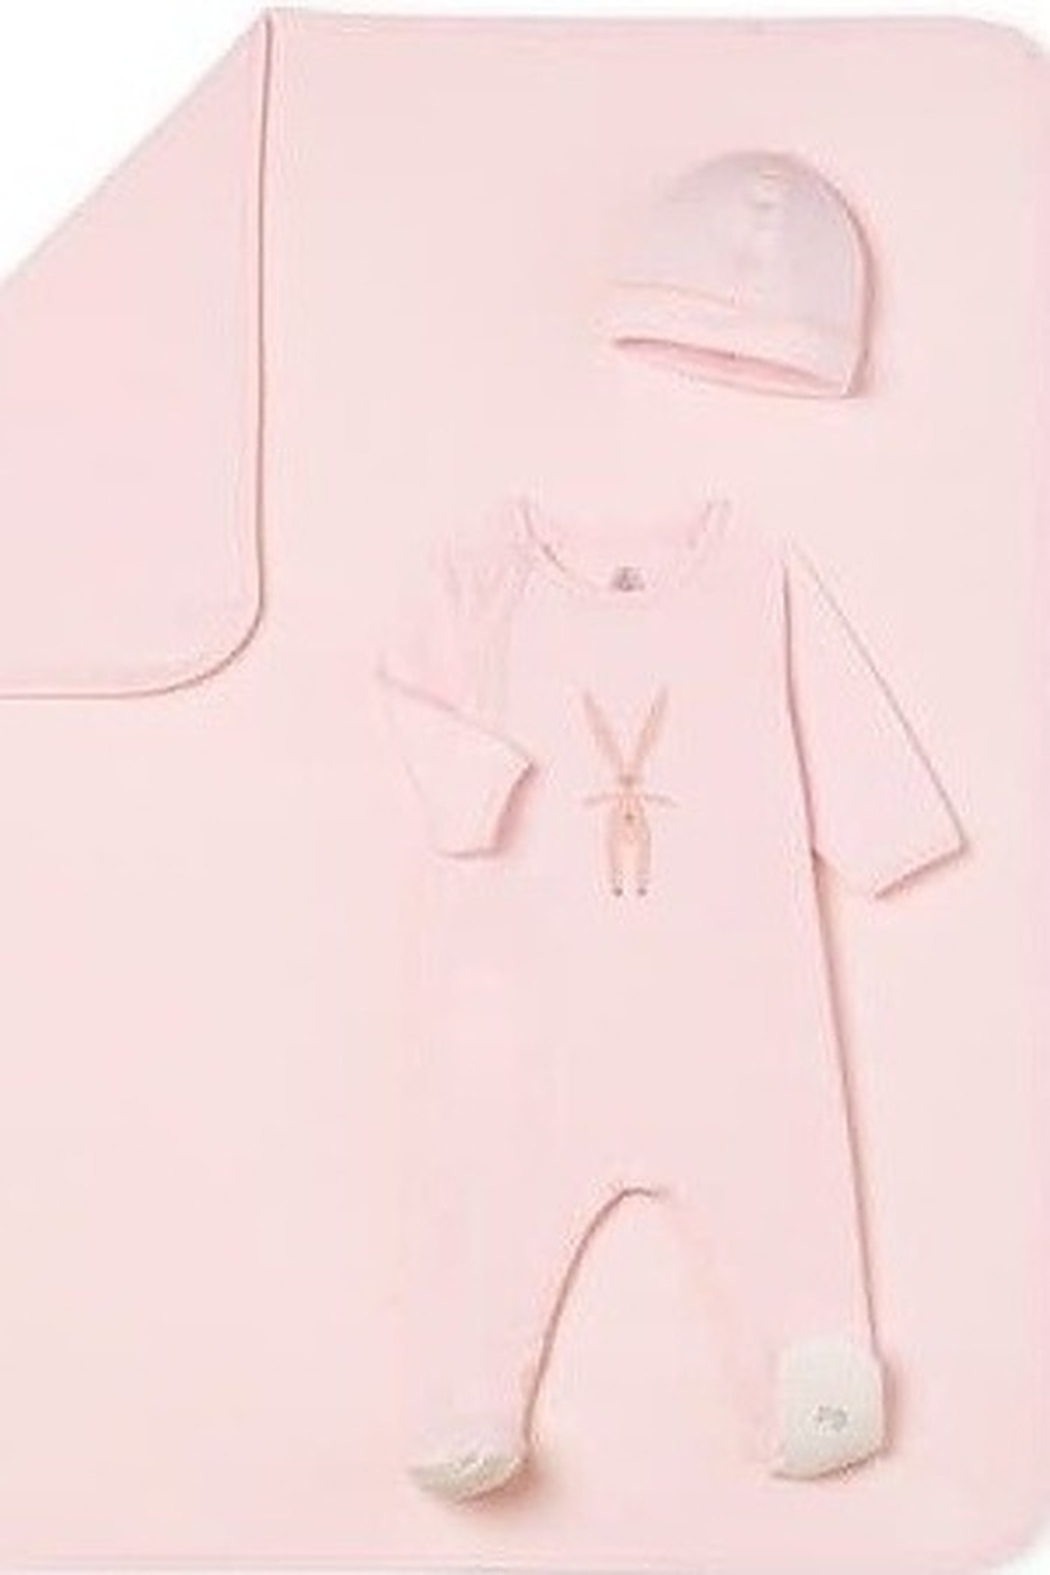 Petit Bateau Infant Footed Pajamas for Girls and Boys with Bunnies | Little Loungers - Main Image